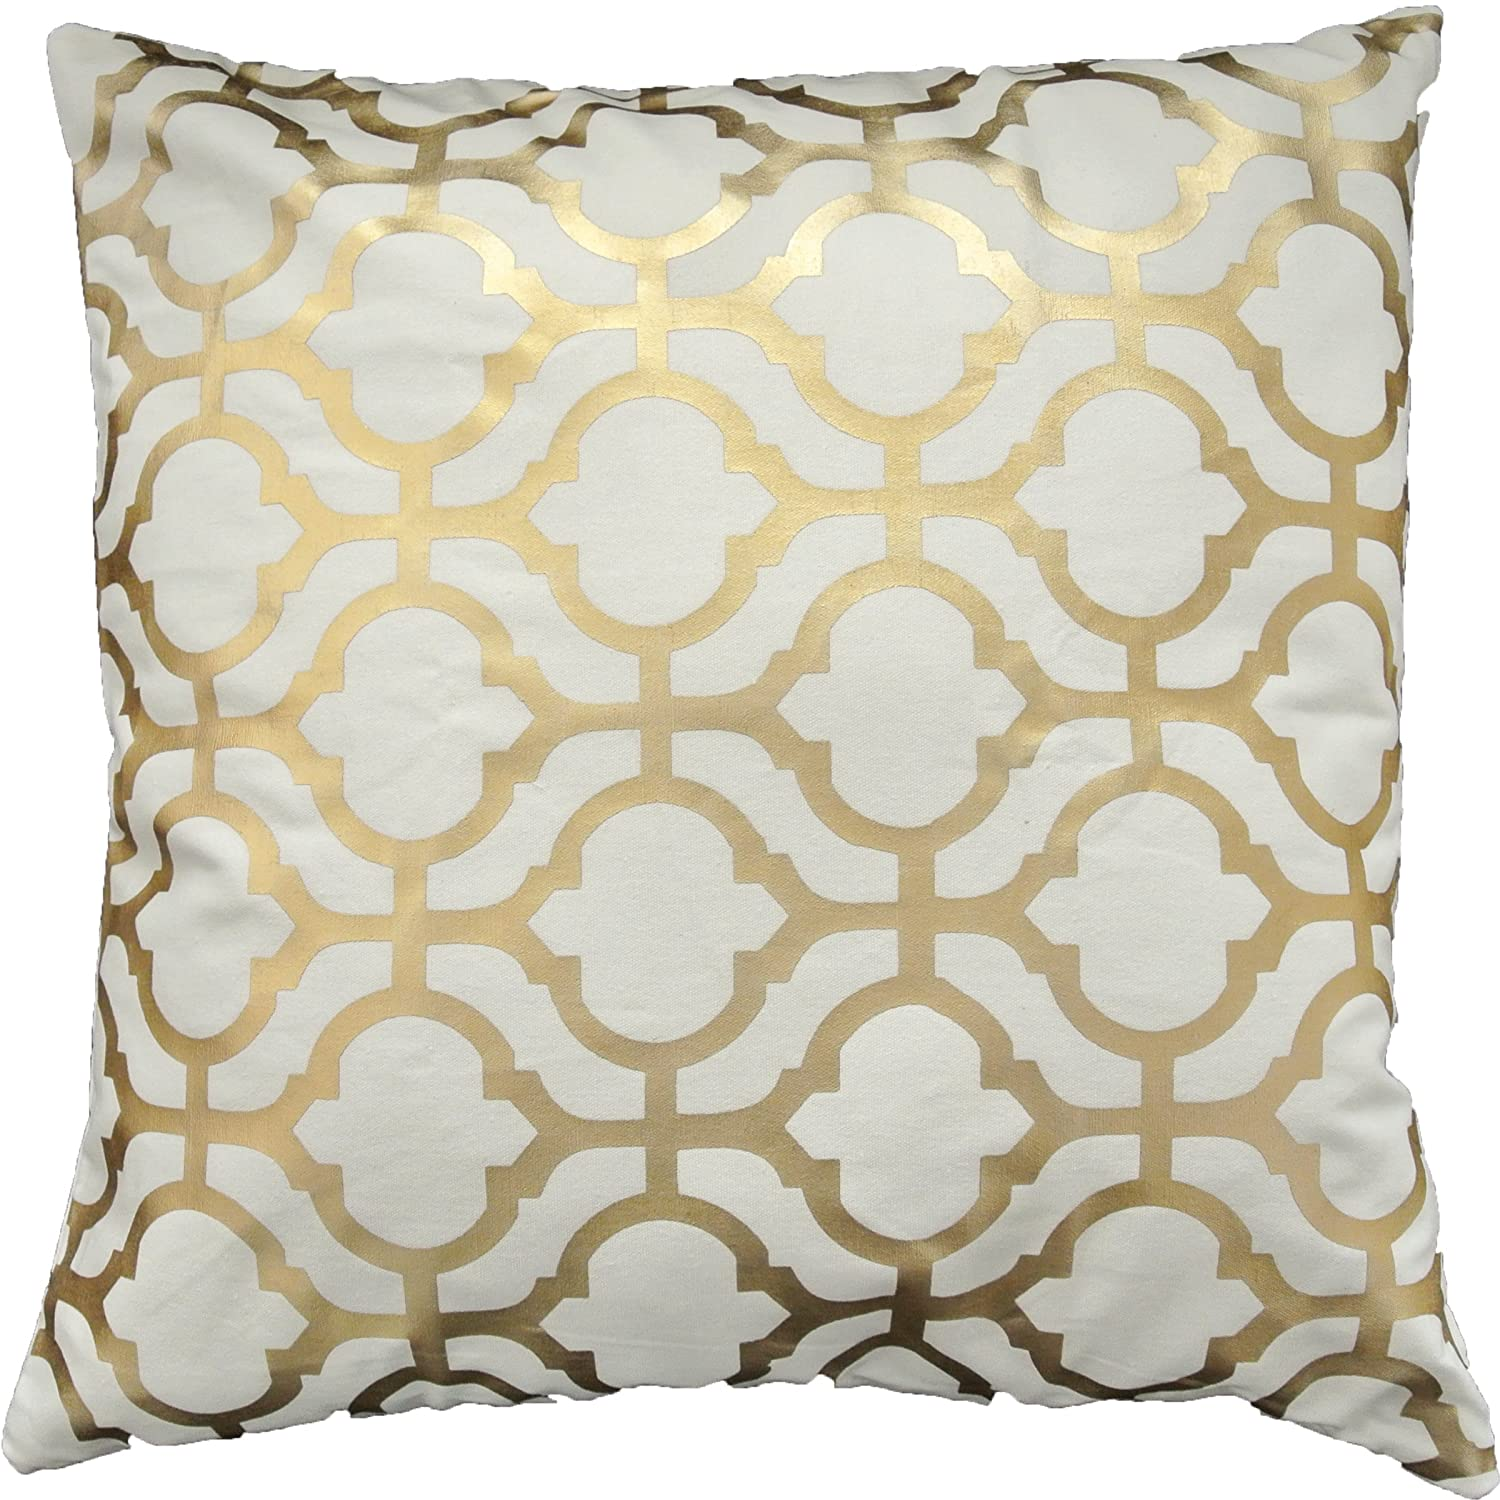 Amazon.com: Gold Foil Geometric Print Decorative Throw Pillow COVER 18\